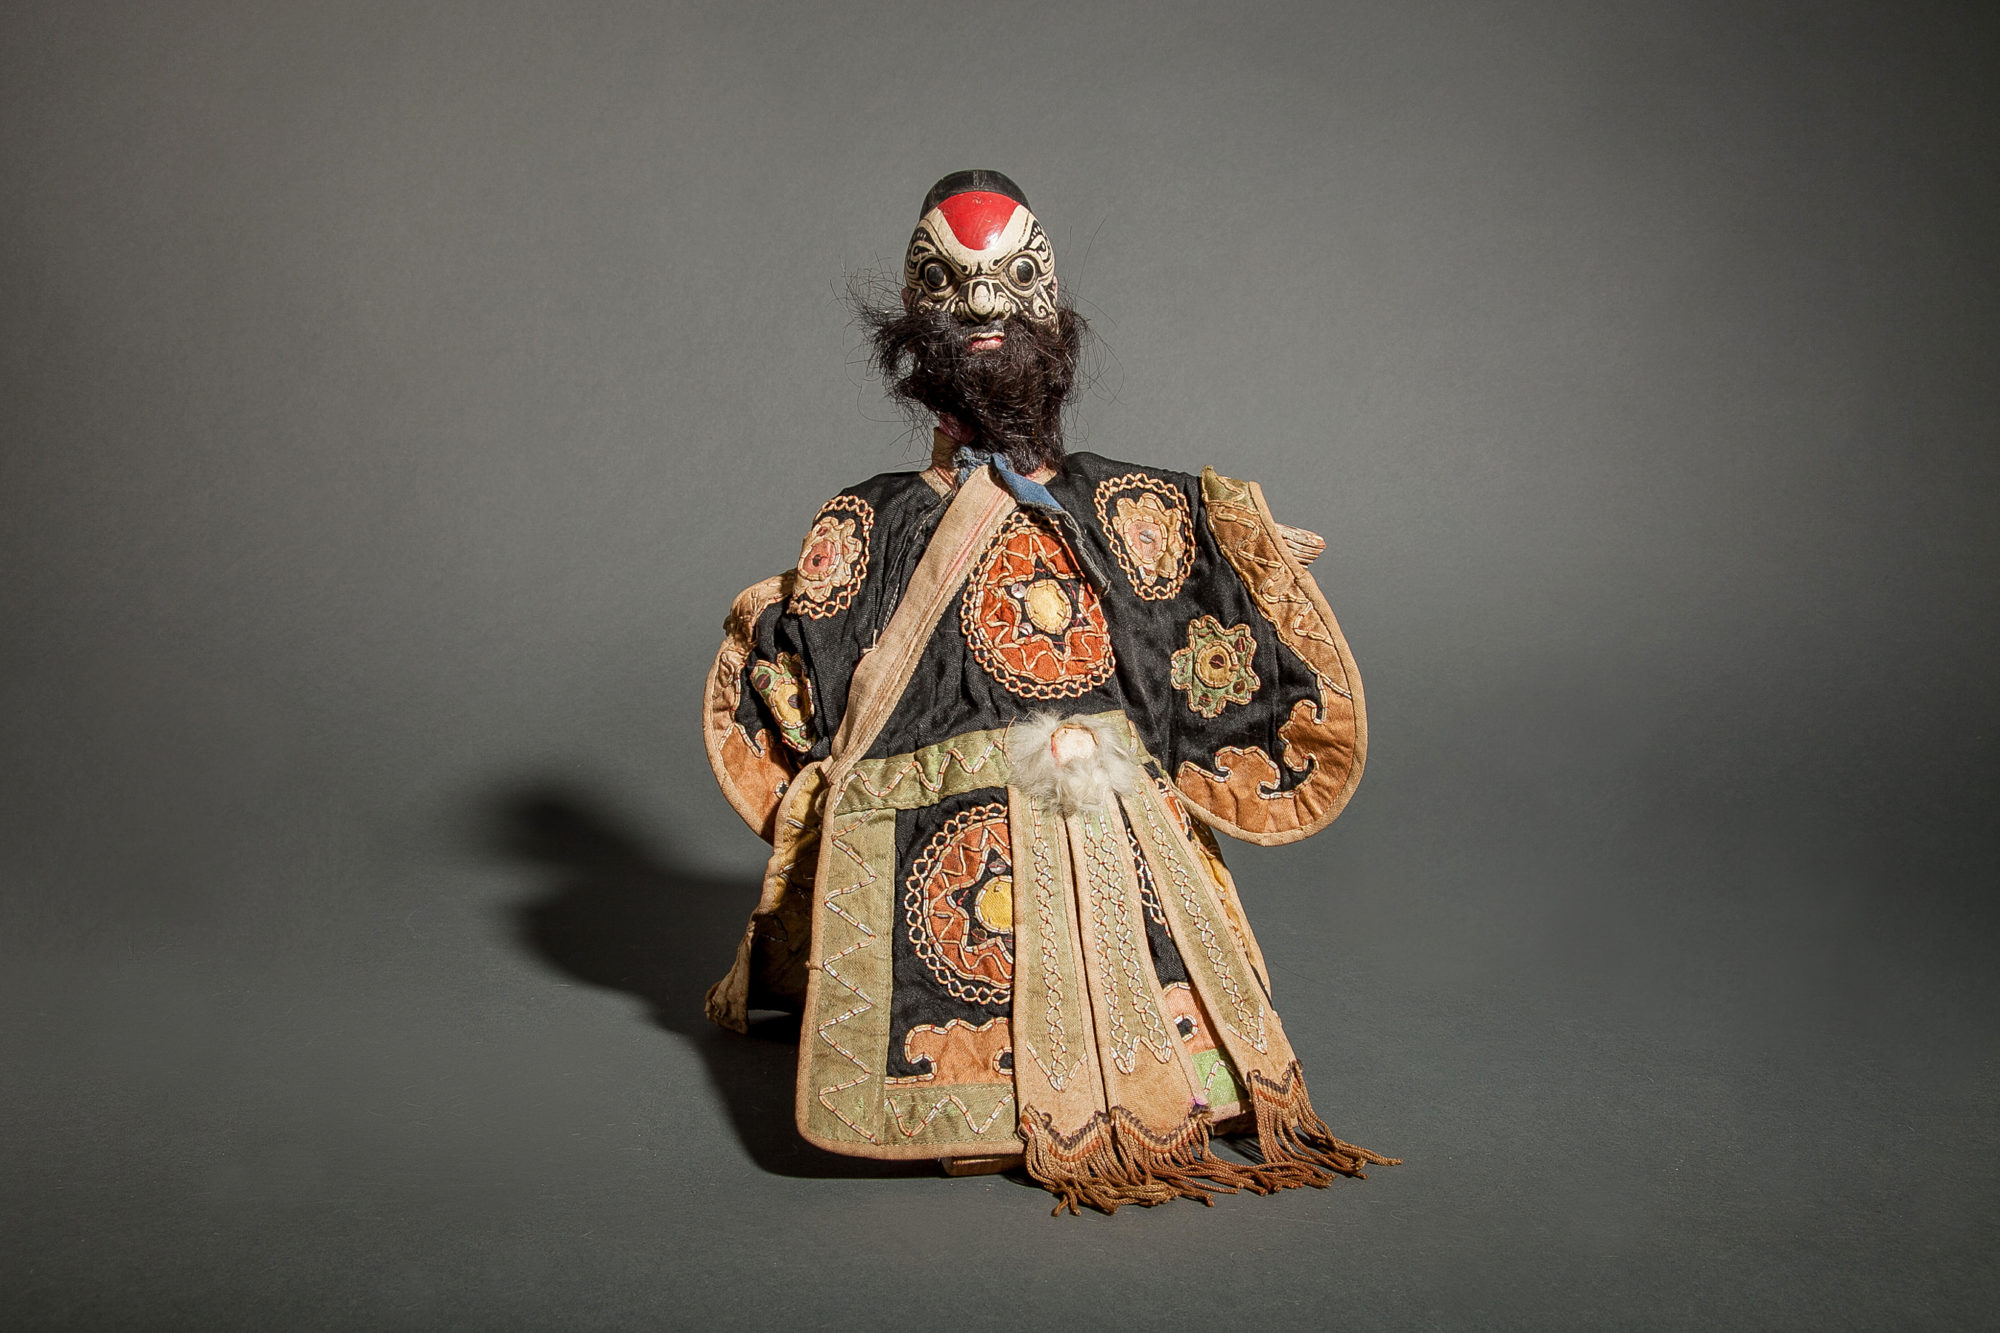 Chinese Hand Puppet